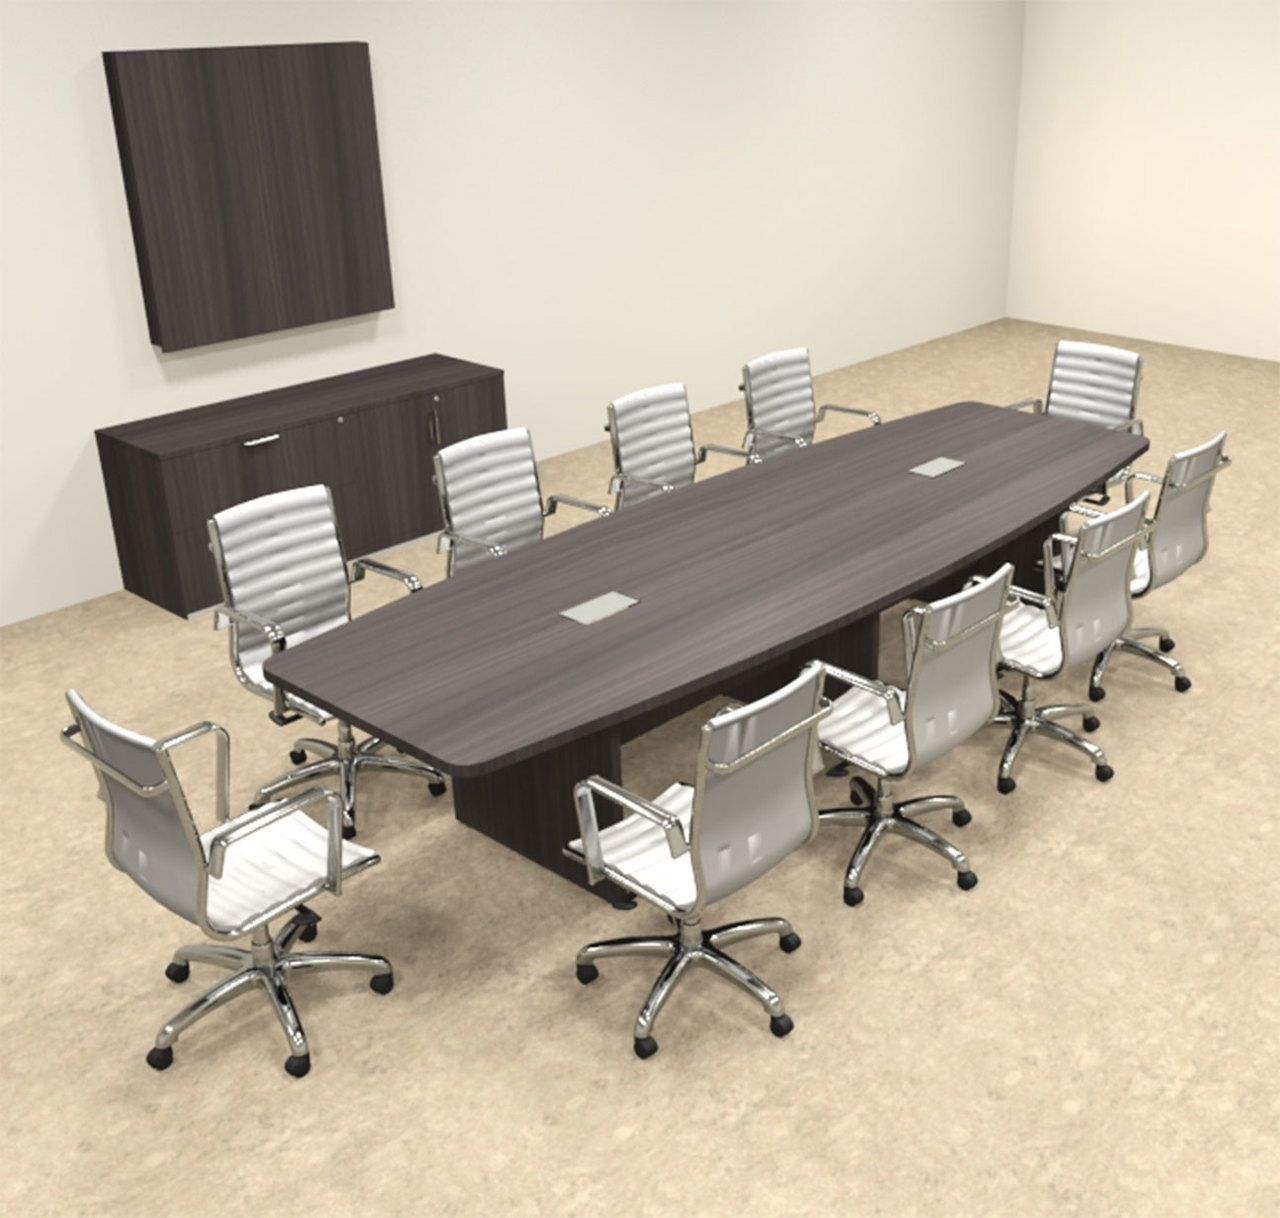 Modern Boat Shapedd 12 Feet Conference Table Of Con C134 Modern Conference Table Conference Table Office Table Design